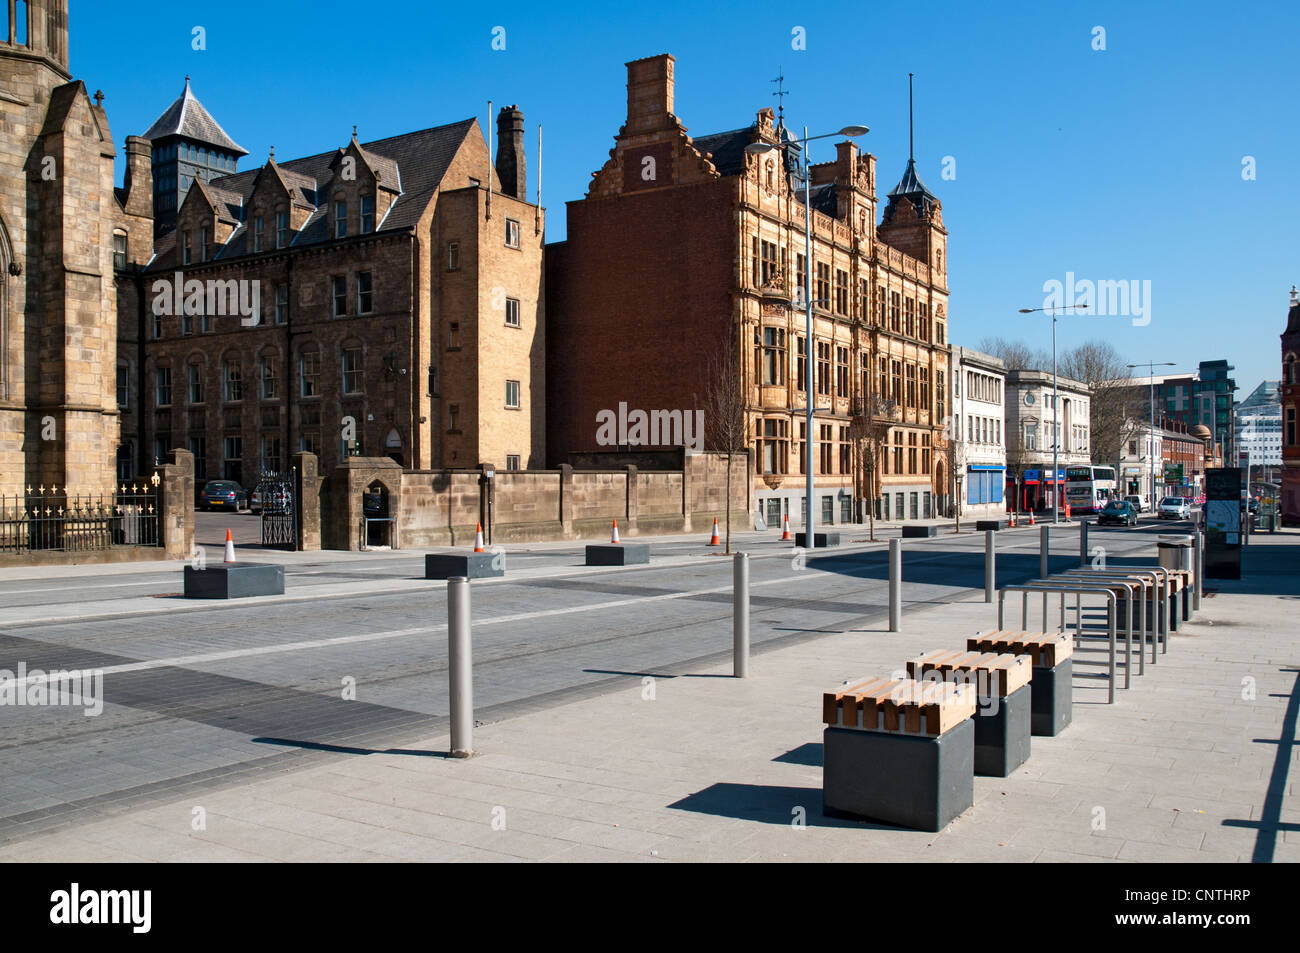 New street furniture and public realm landscaping on Chapel Street, Salford, Manchester, England, UK - Stock Image